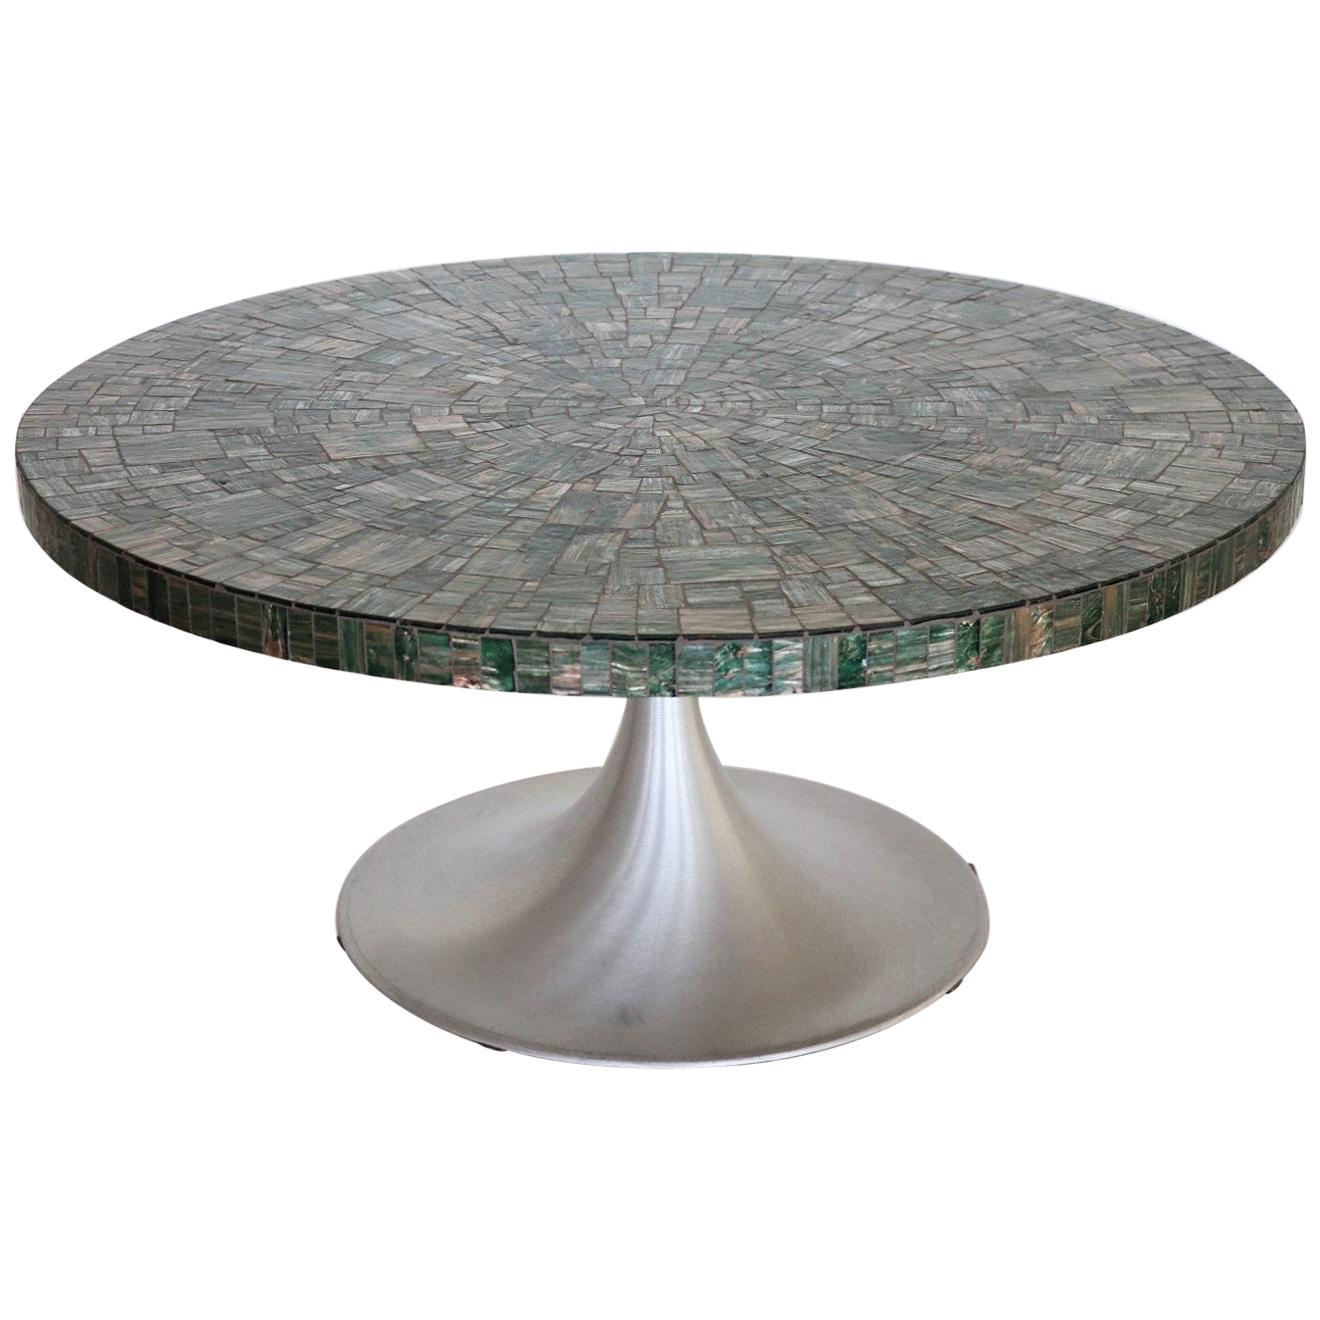 Midcentury Green Mosaic Tulip Coffee Table by Heinz Lilienthal, 1960s